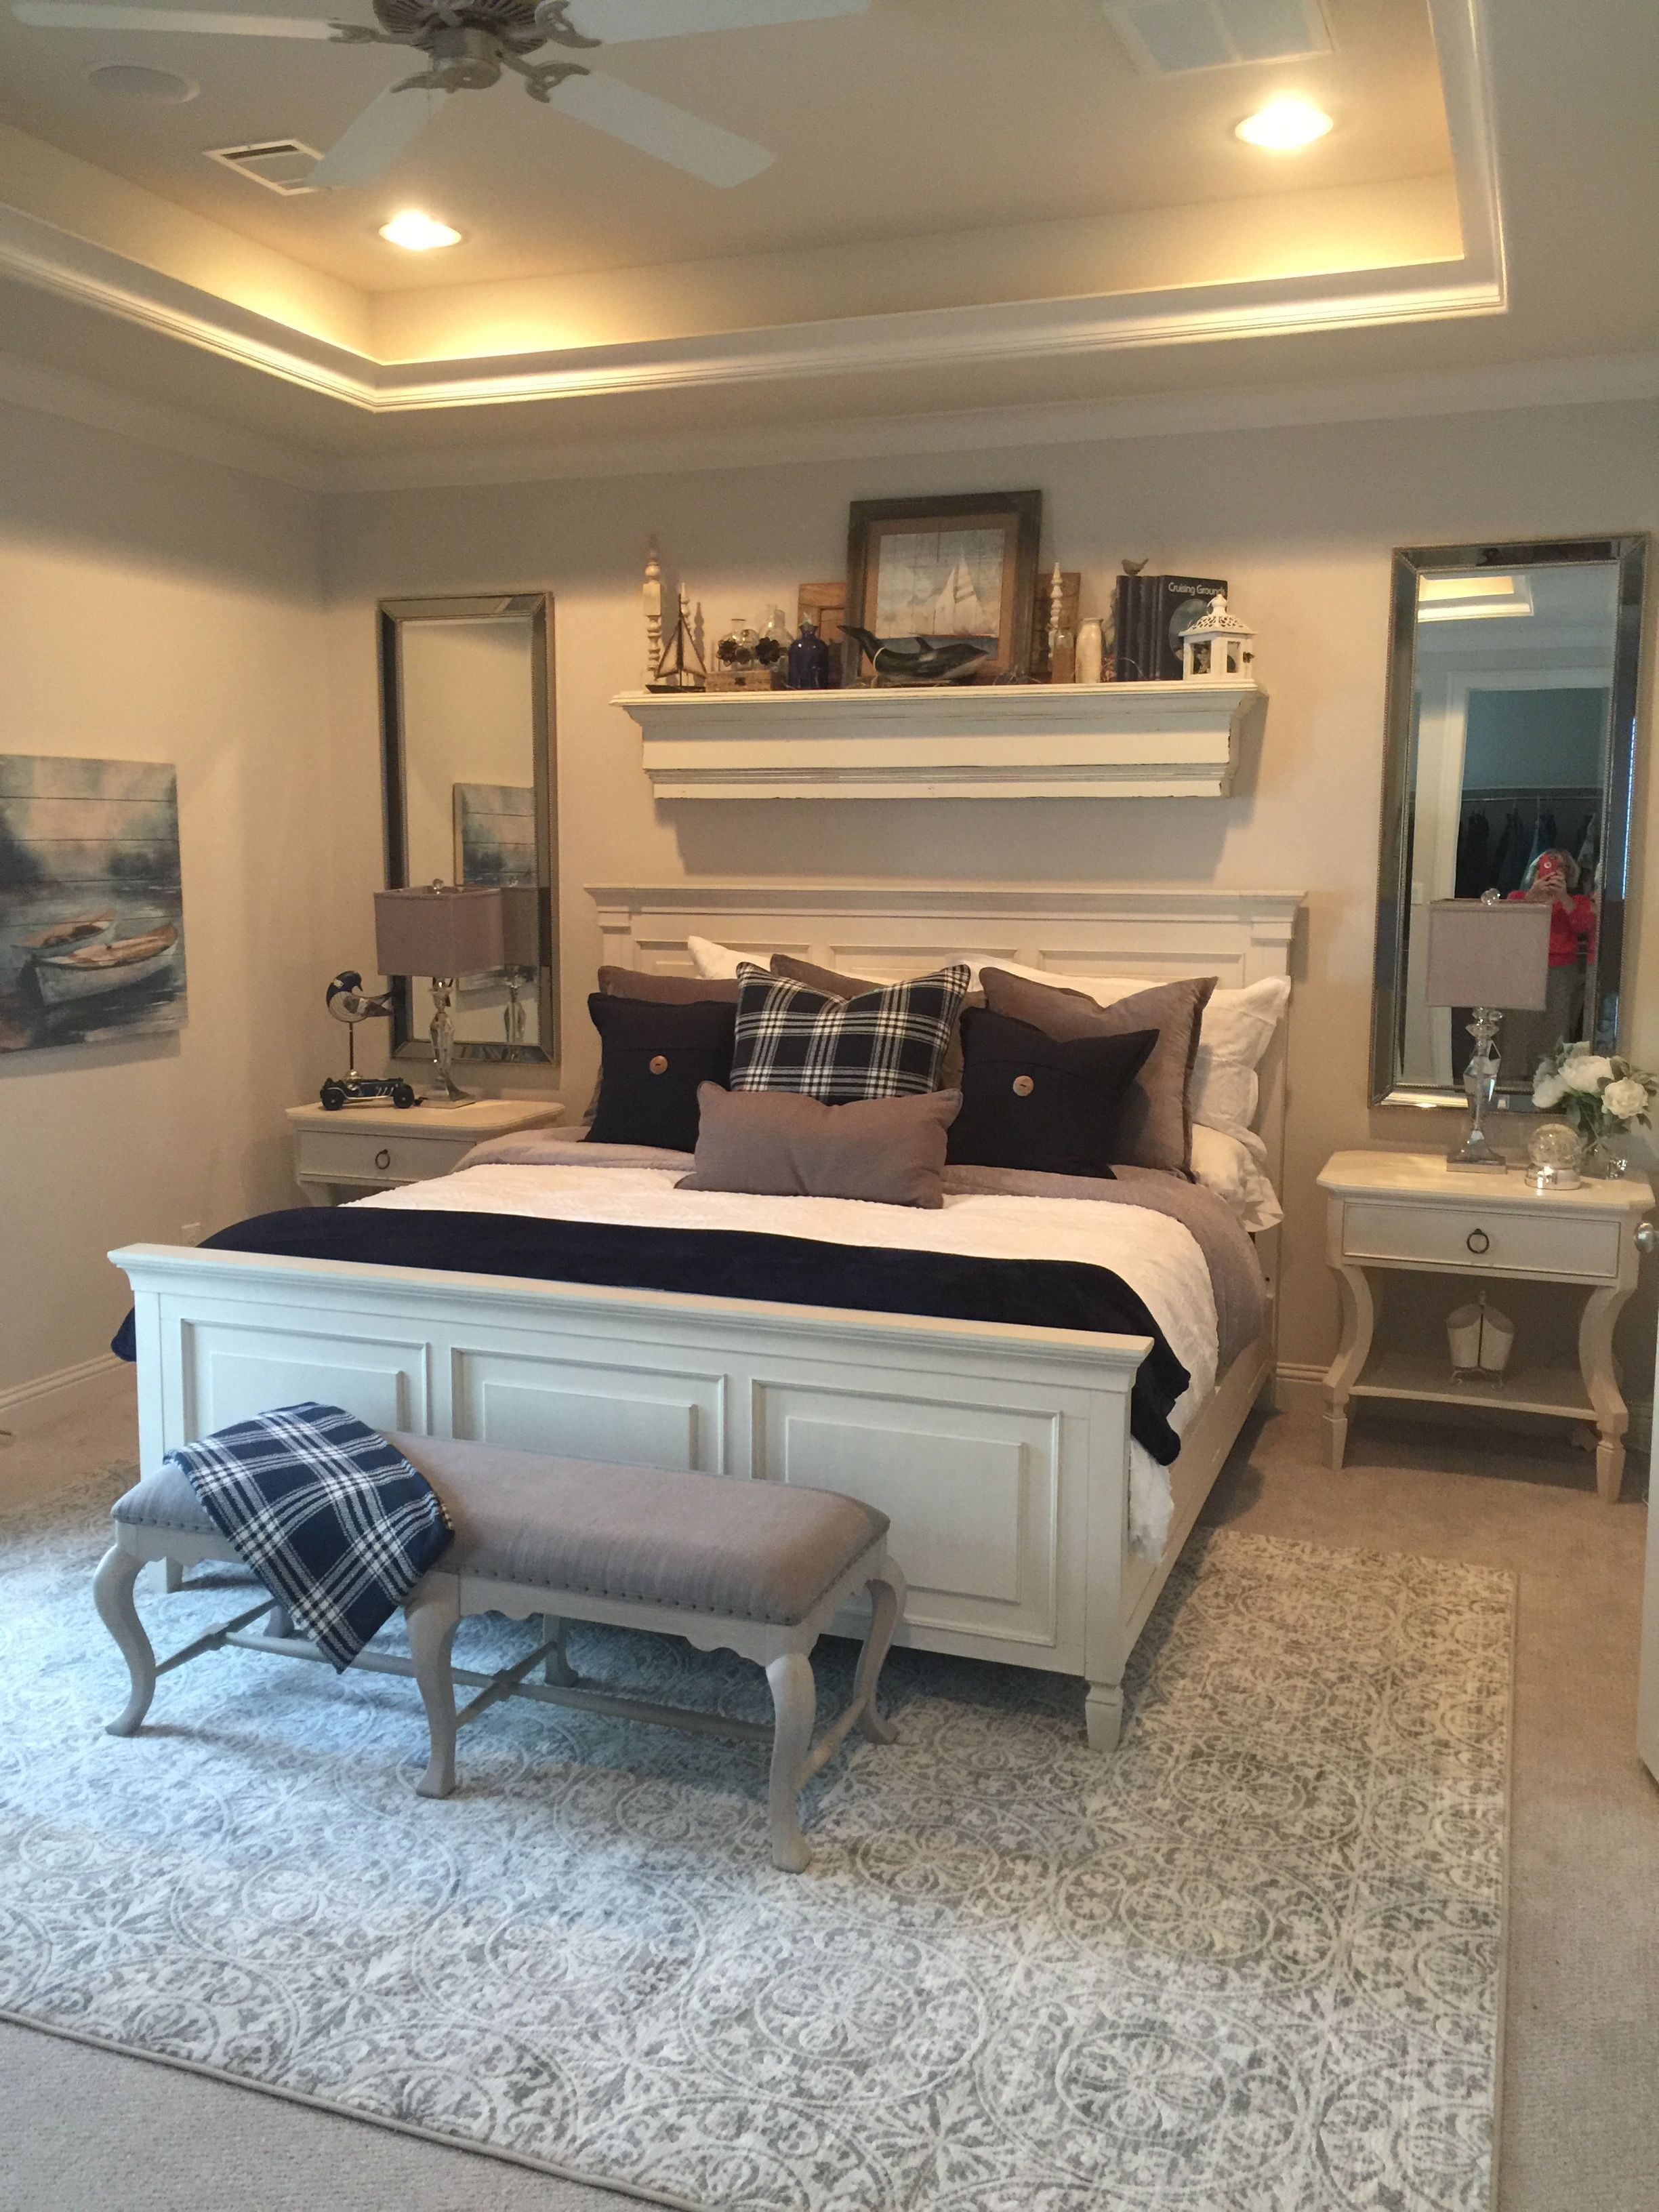 Rug Coastal farmhouse glam master bedroom. This was a fun